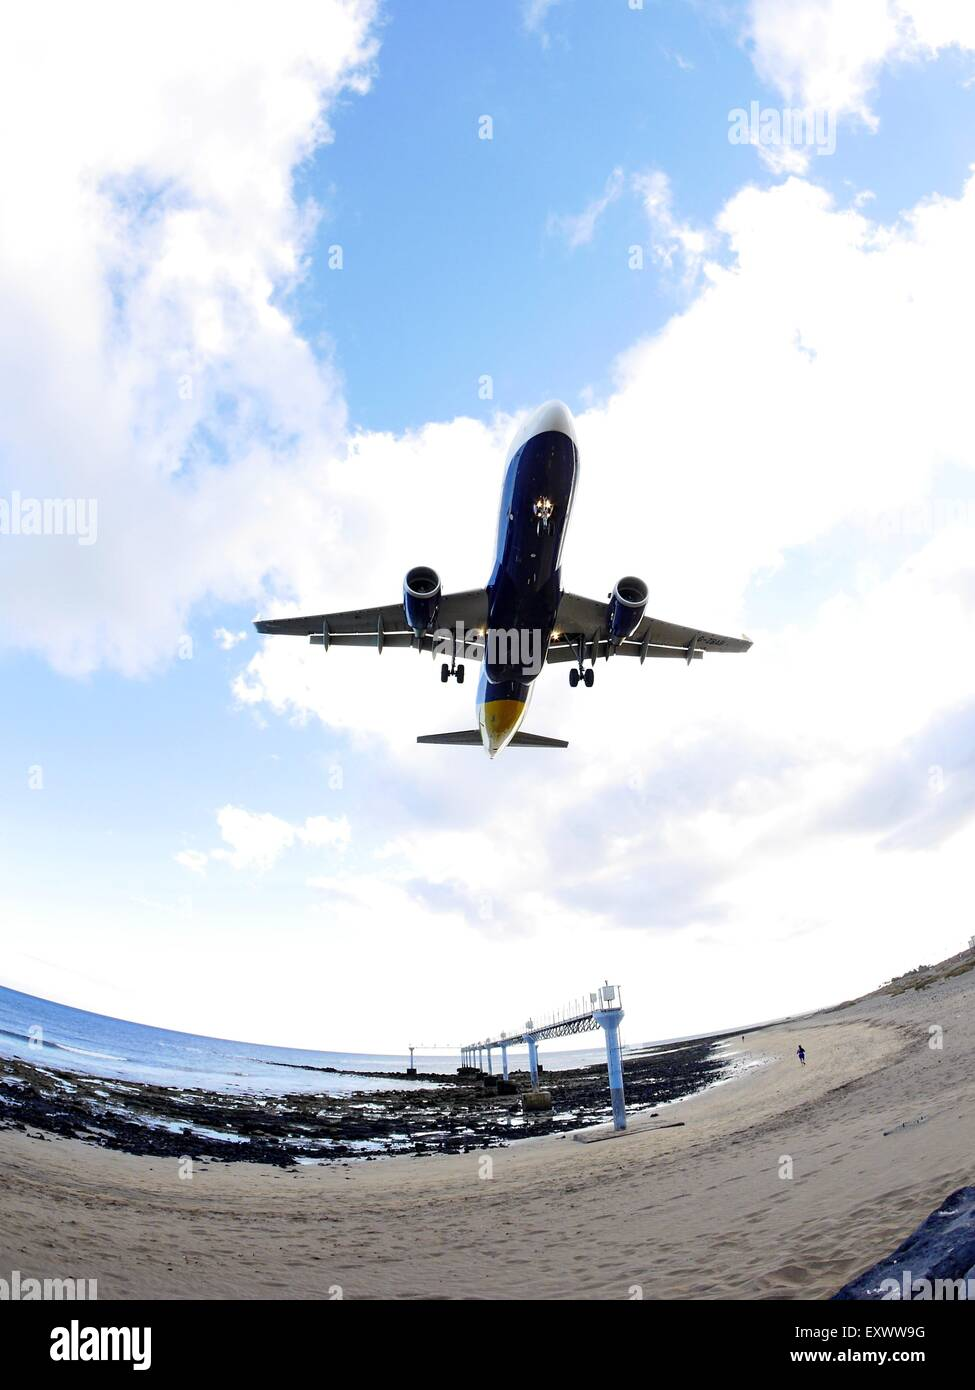 Aeroplane approach for a landing, Arrecife, Lanzarote, Canaries, Spain, Europe - Stock Image